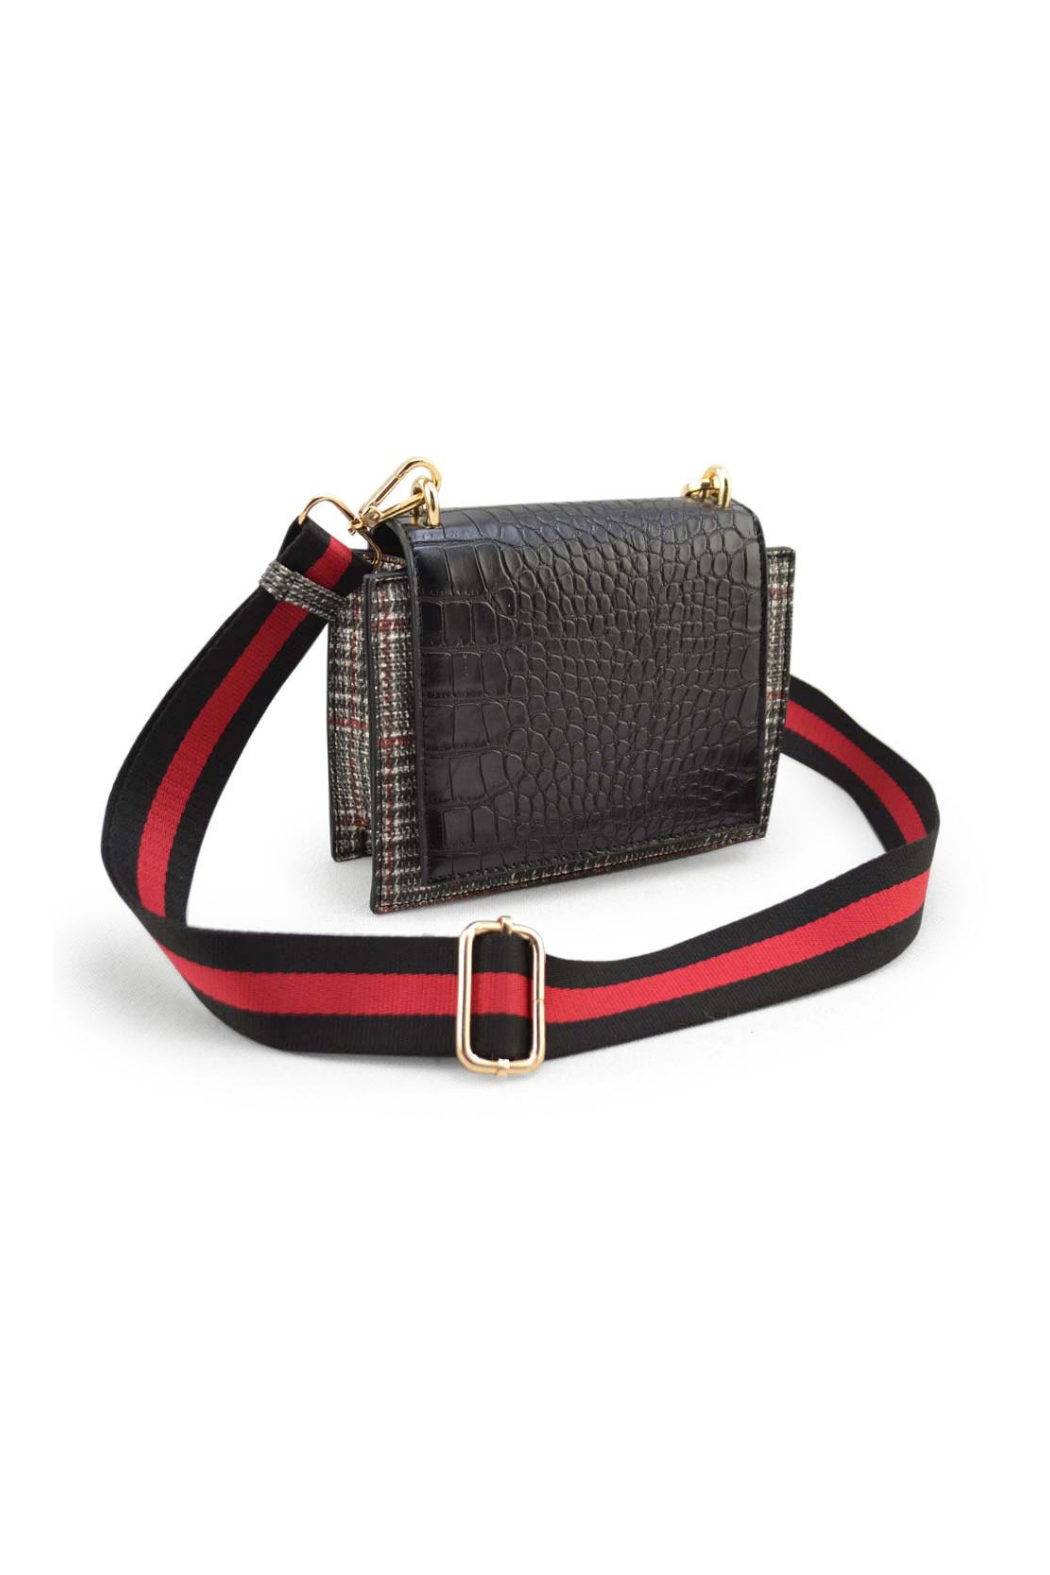 Sondra Roberts Crossbody with Flap - Front Cropped Image